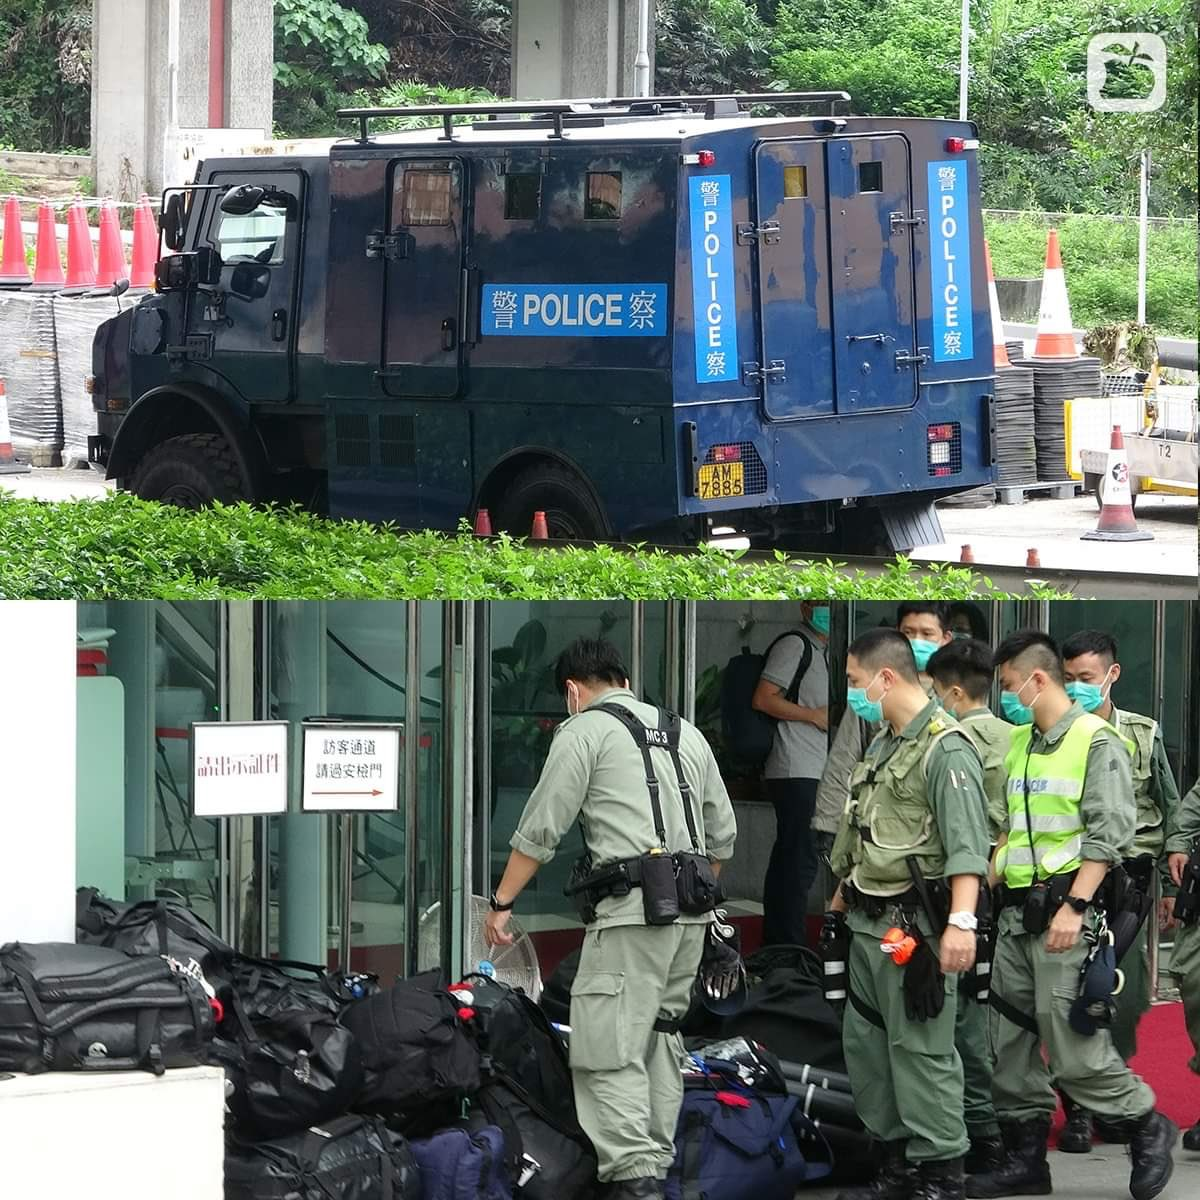 #HK police at the Liaison Office this morning appear to be fortifying it against any potential 'unrest' in wake of announcement of impending 'national security' legislation. Loyal to their colonial master til the very end. https://m.facebook.com/105259197447/posts/10159045491547448/…pic.twitter.com/oT6Knutf7D